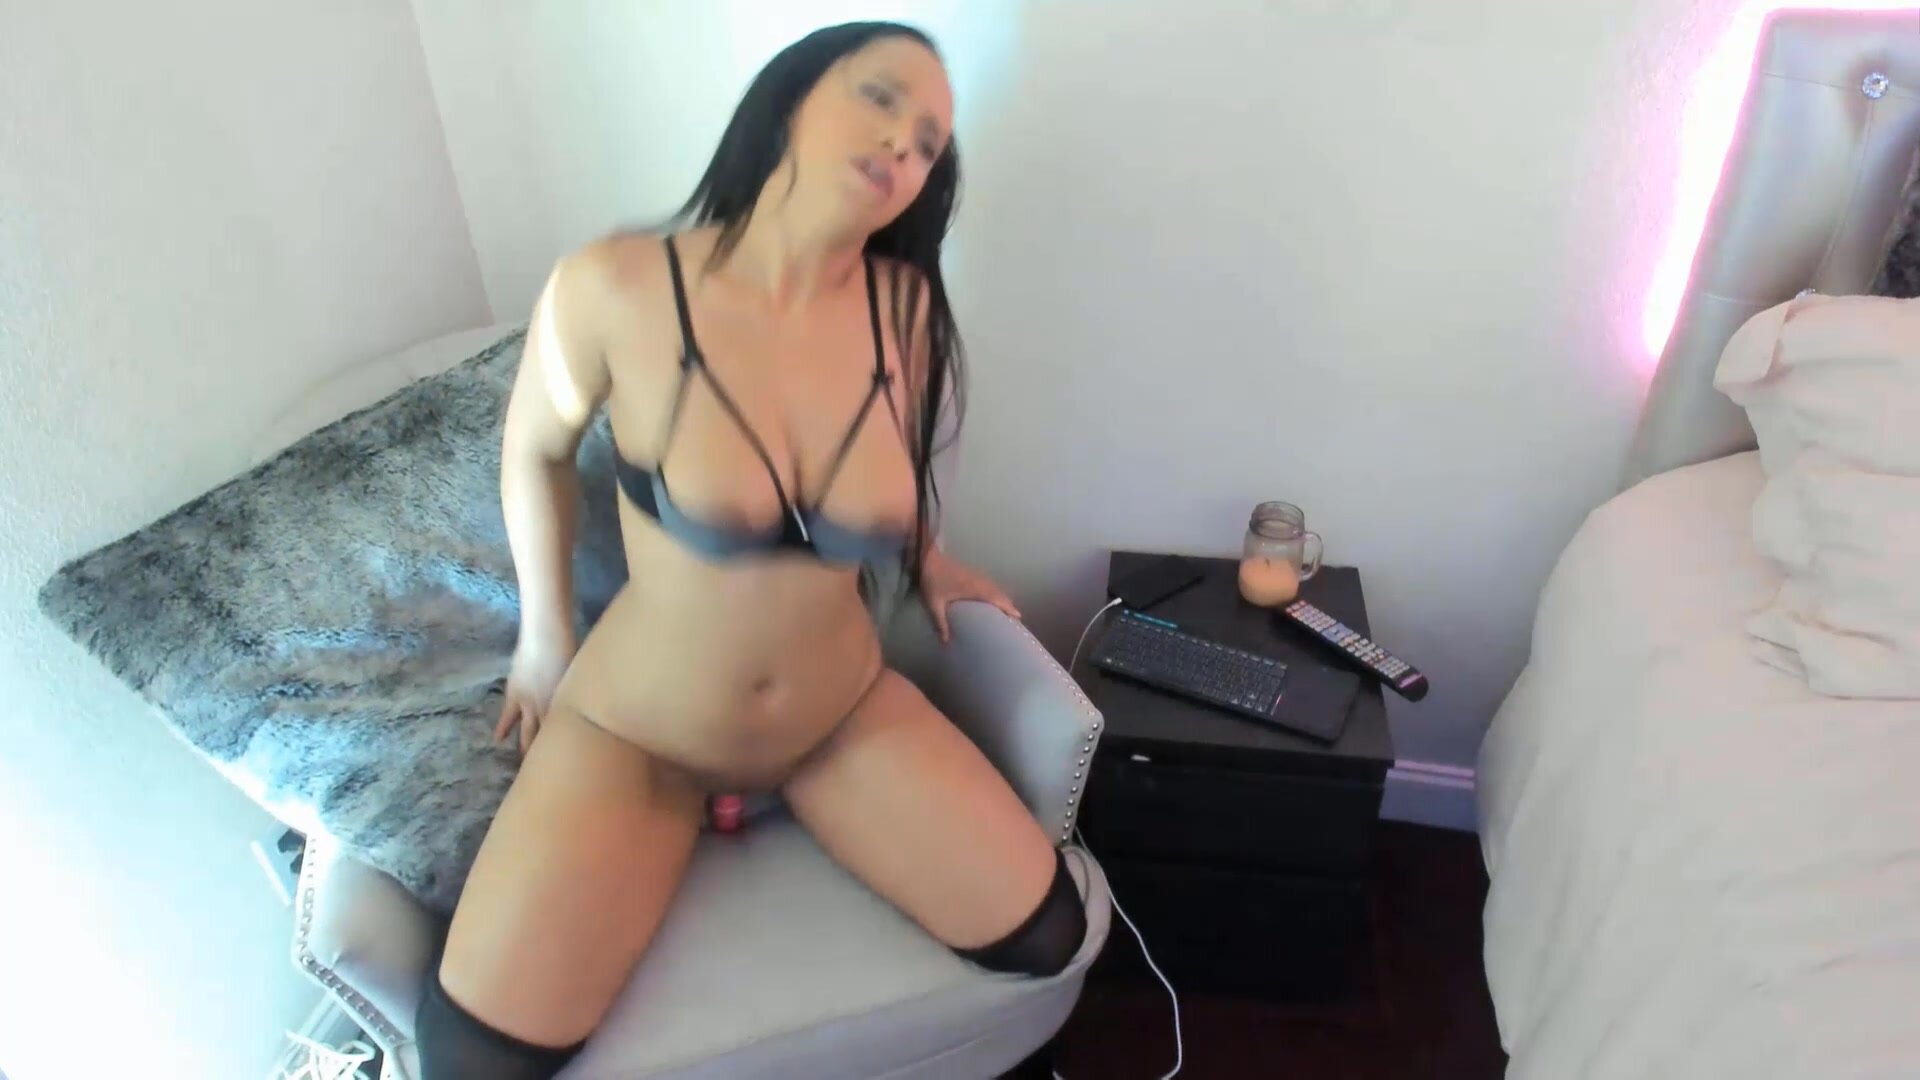 Stunning MeganMaxine with sexy tight body and great ass